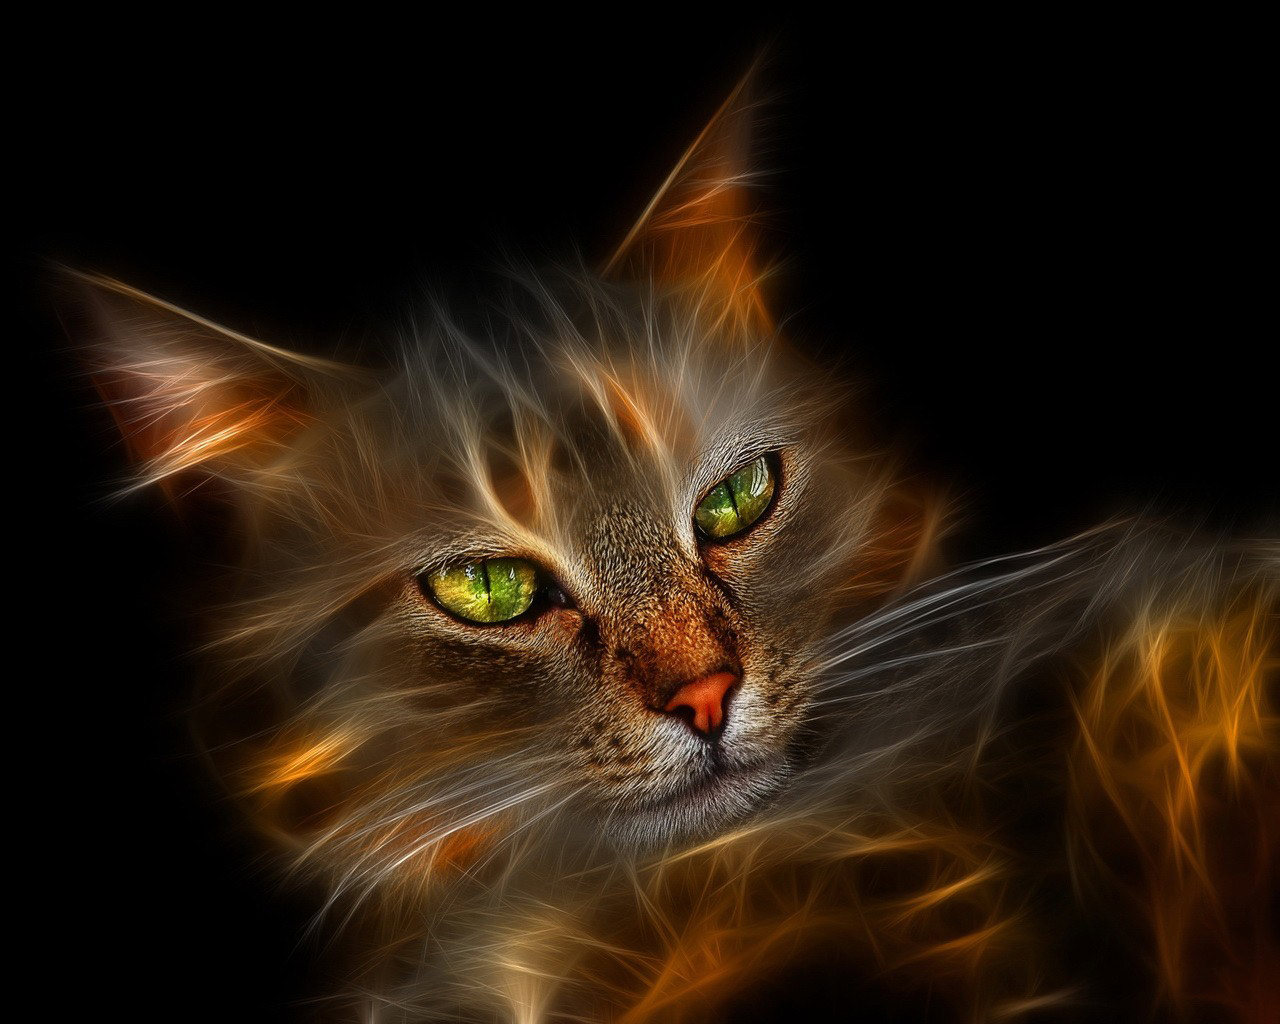 http://1.bp.blogspot.com/-iBe3lNSc520/TdEown5XMyI/AAAAAAAAH1A/oMezN8mC7B8/s1600/Windows_7_Wallpaper_Cat.jpg